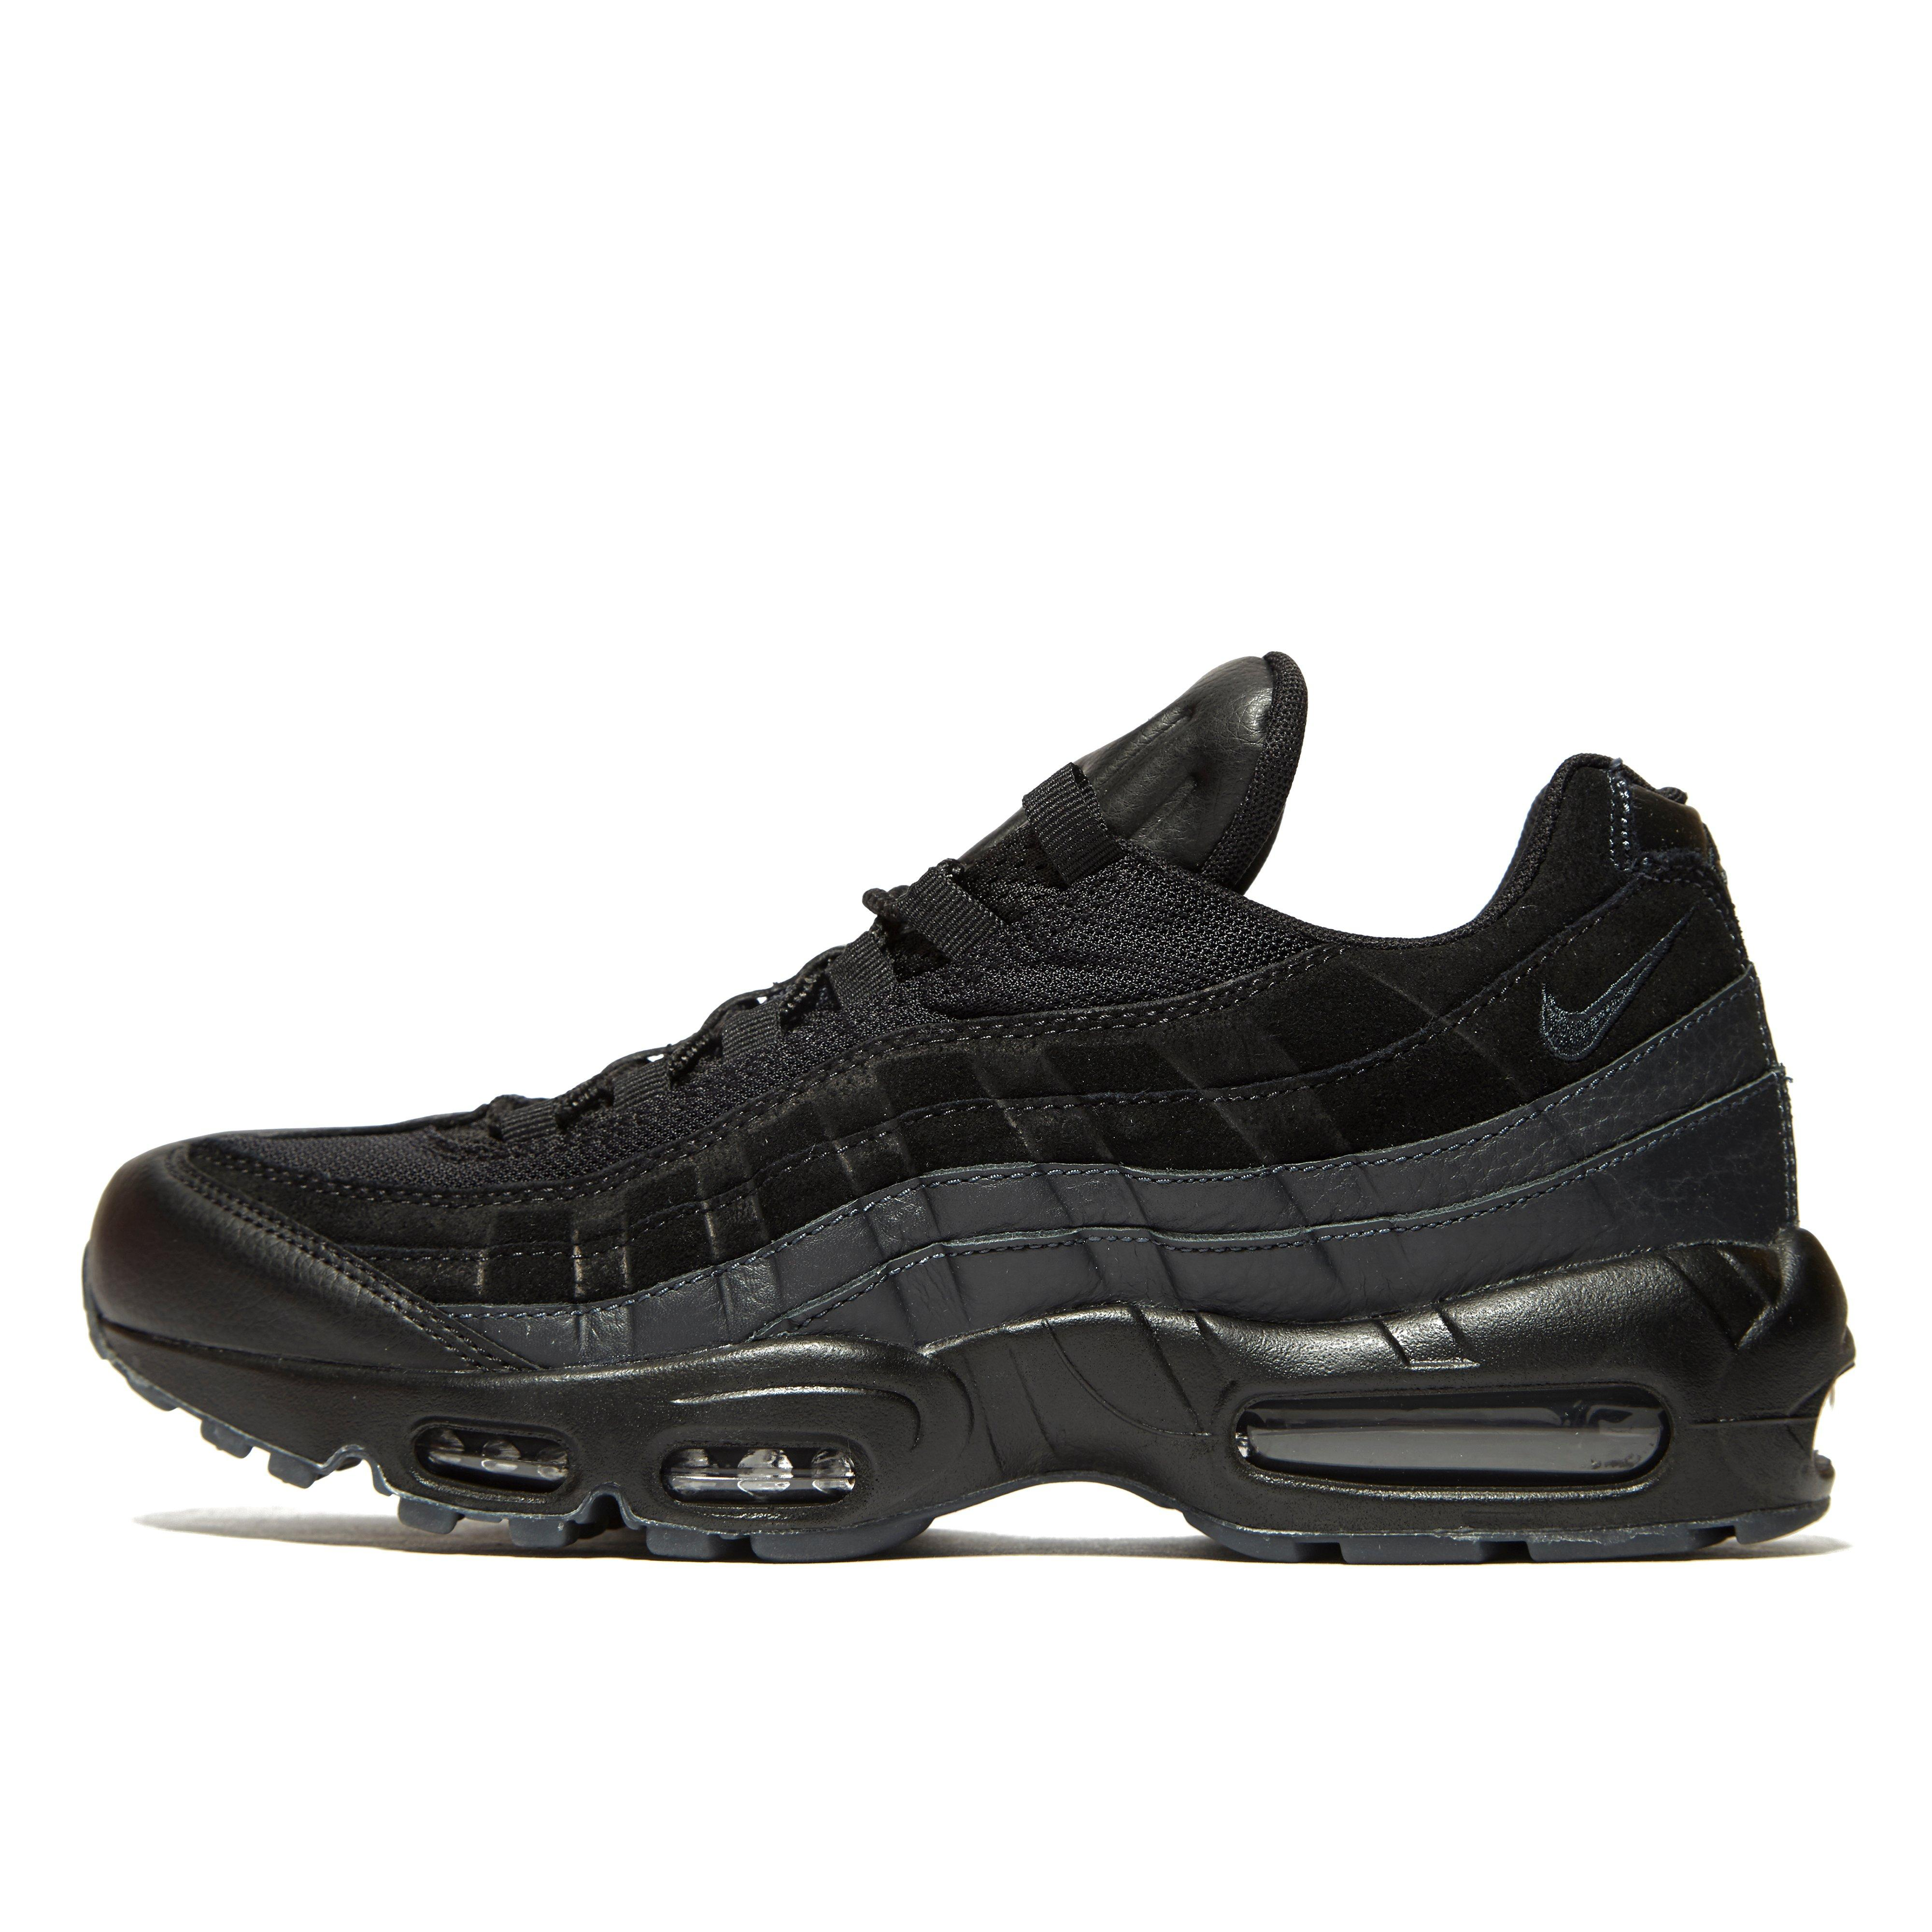 nike air max freestyle swimming